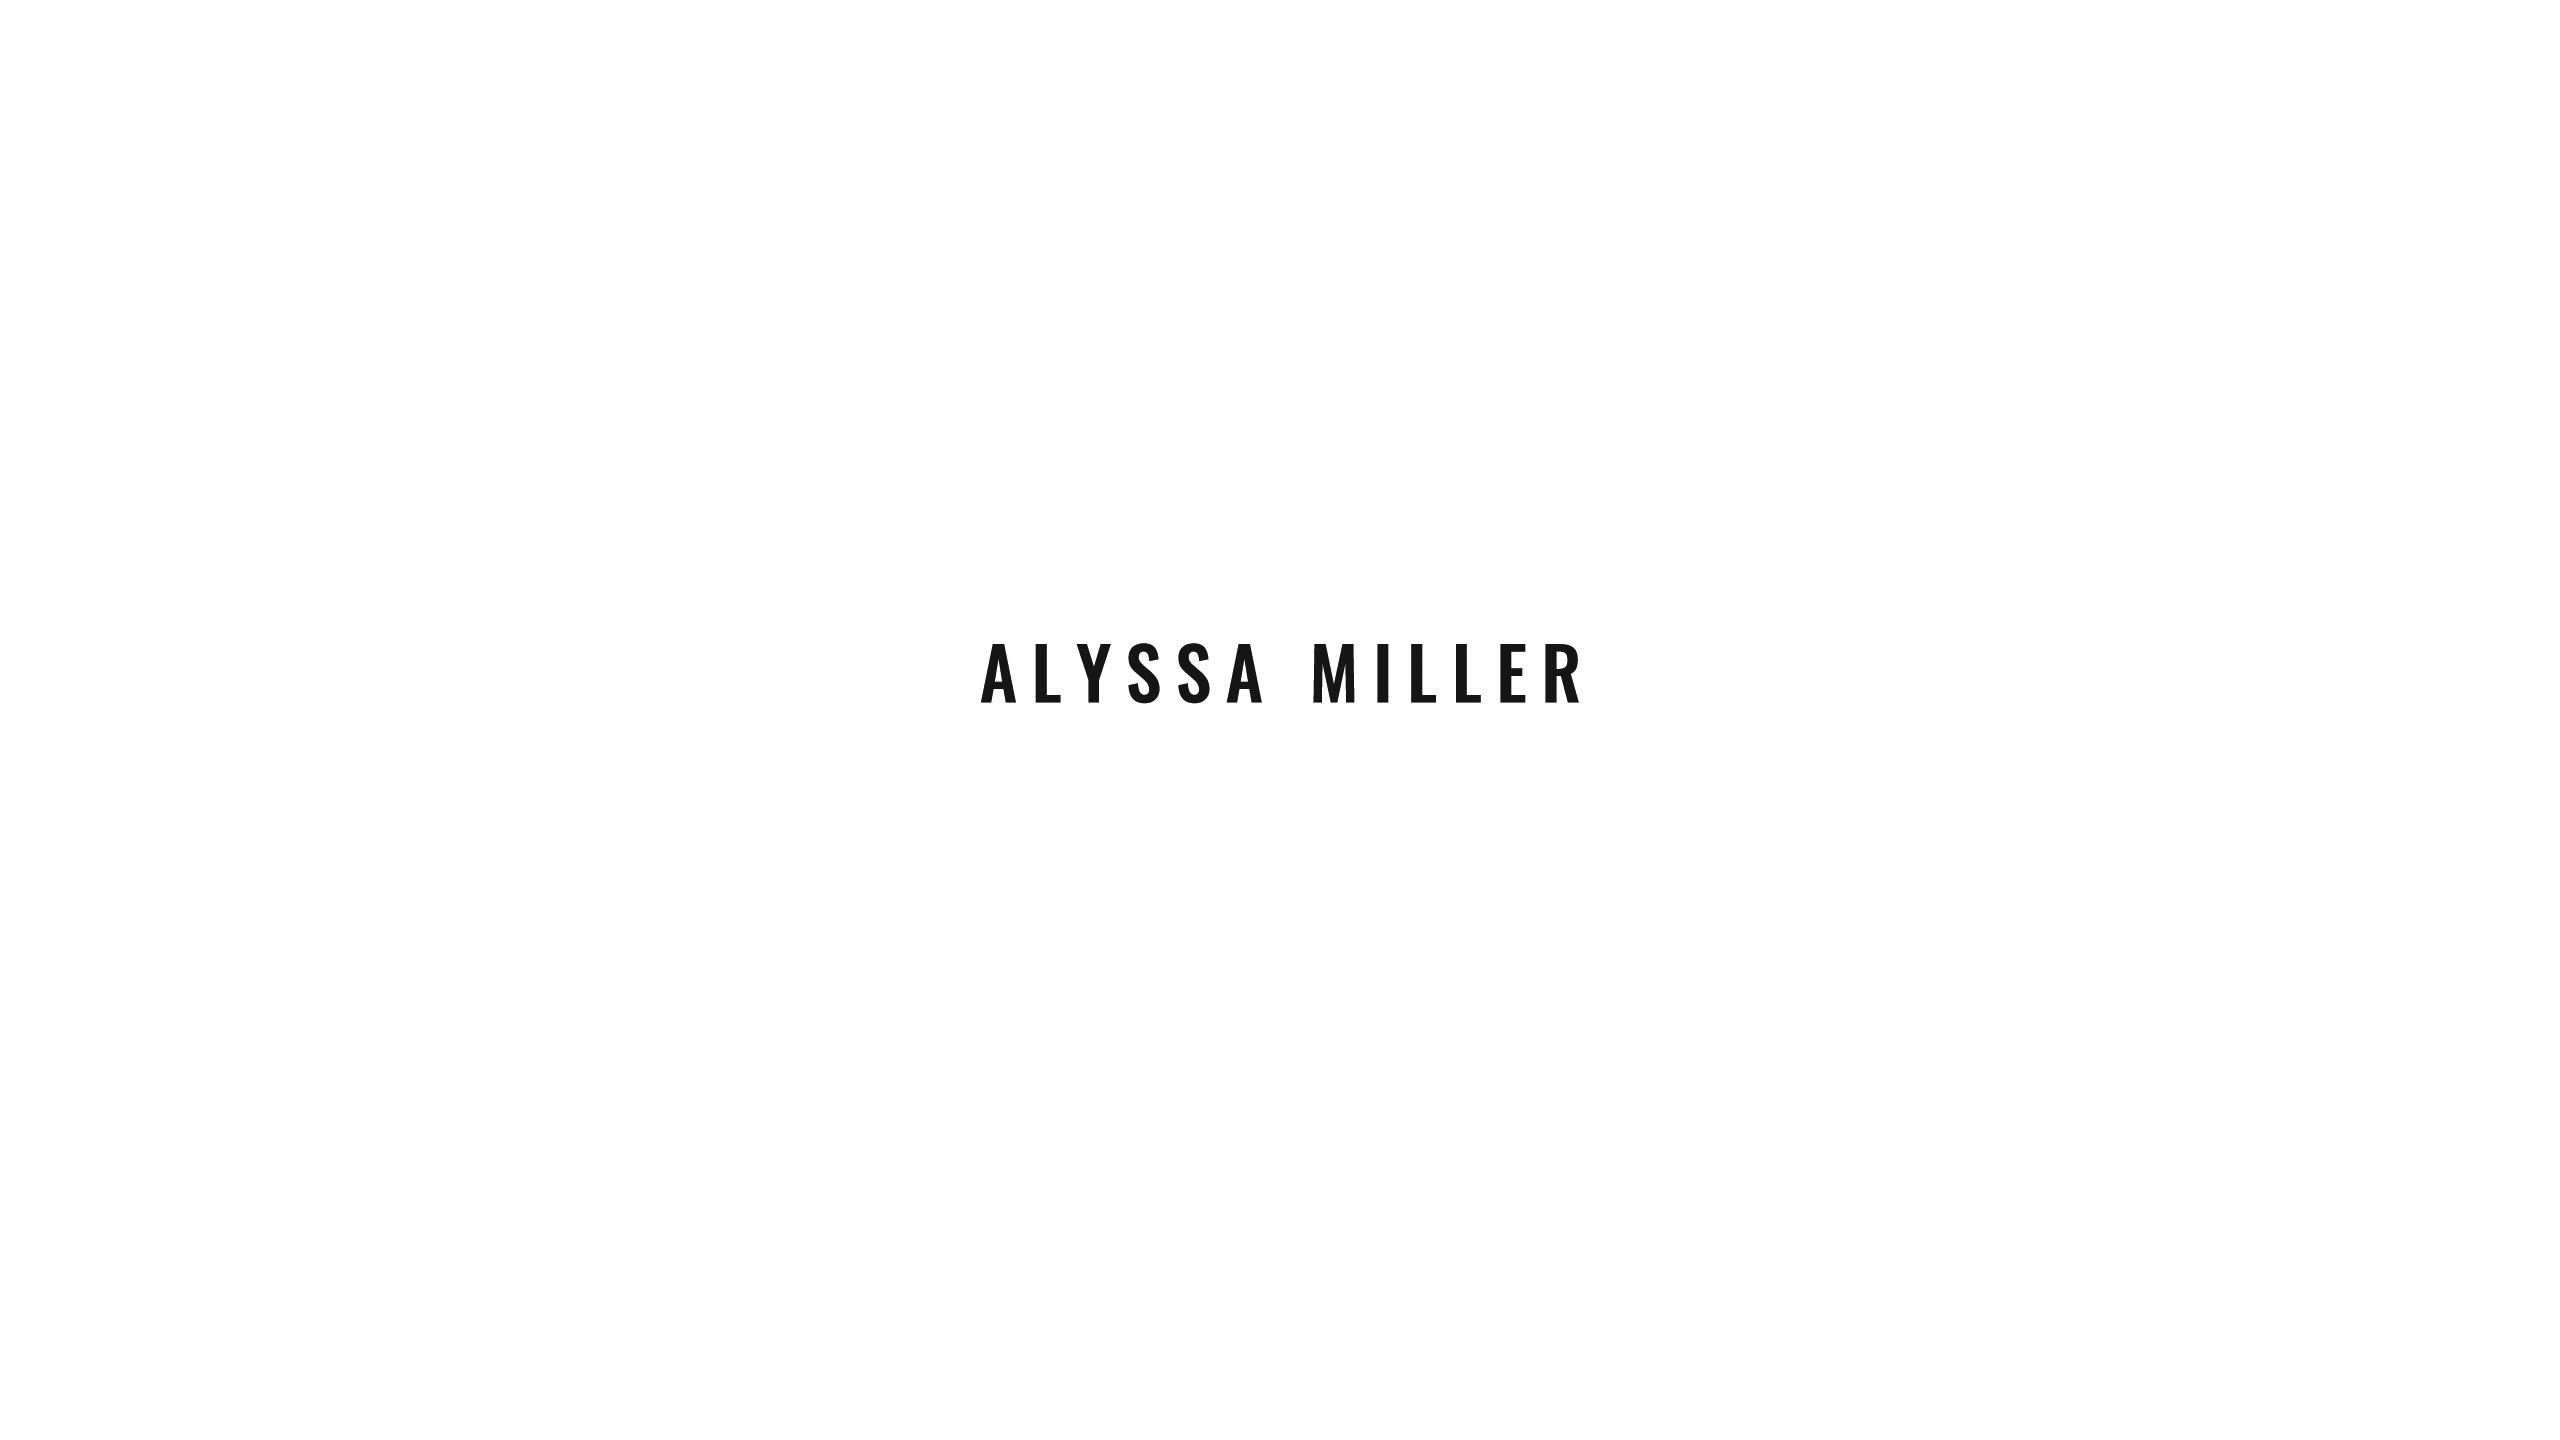 1a_Text_Alyssa_Miller_1